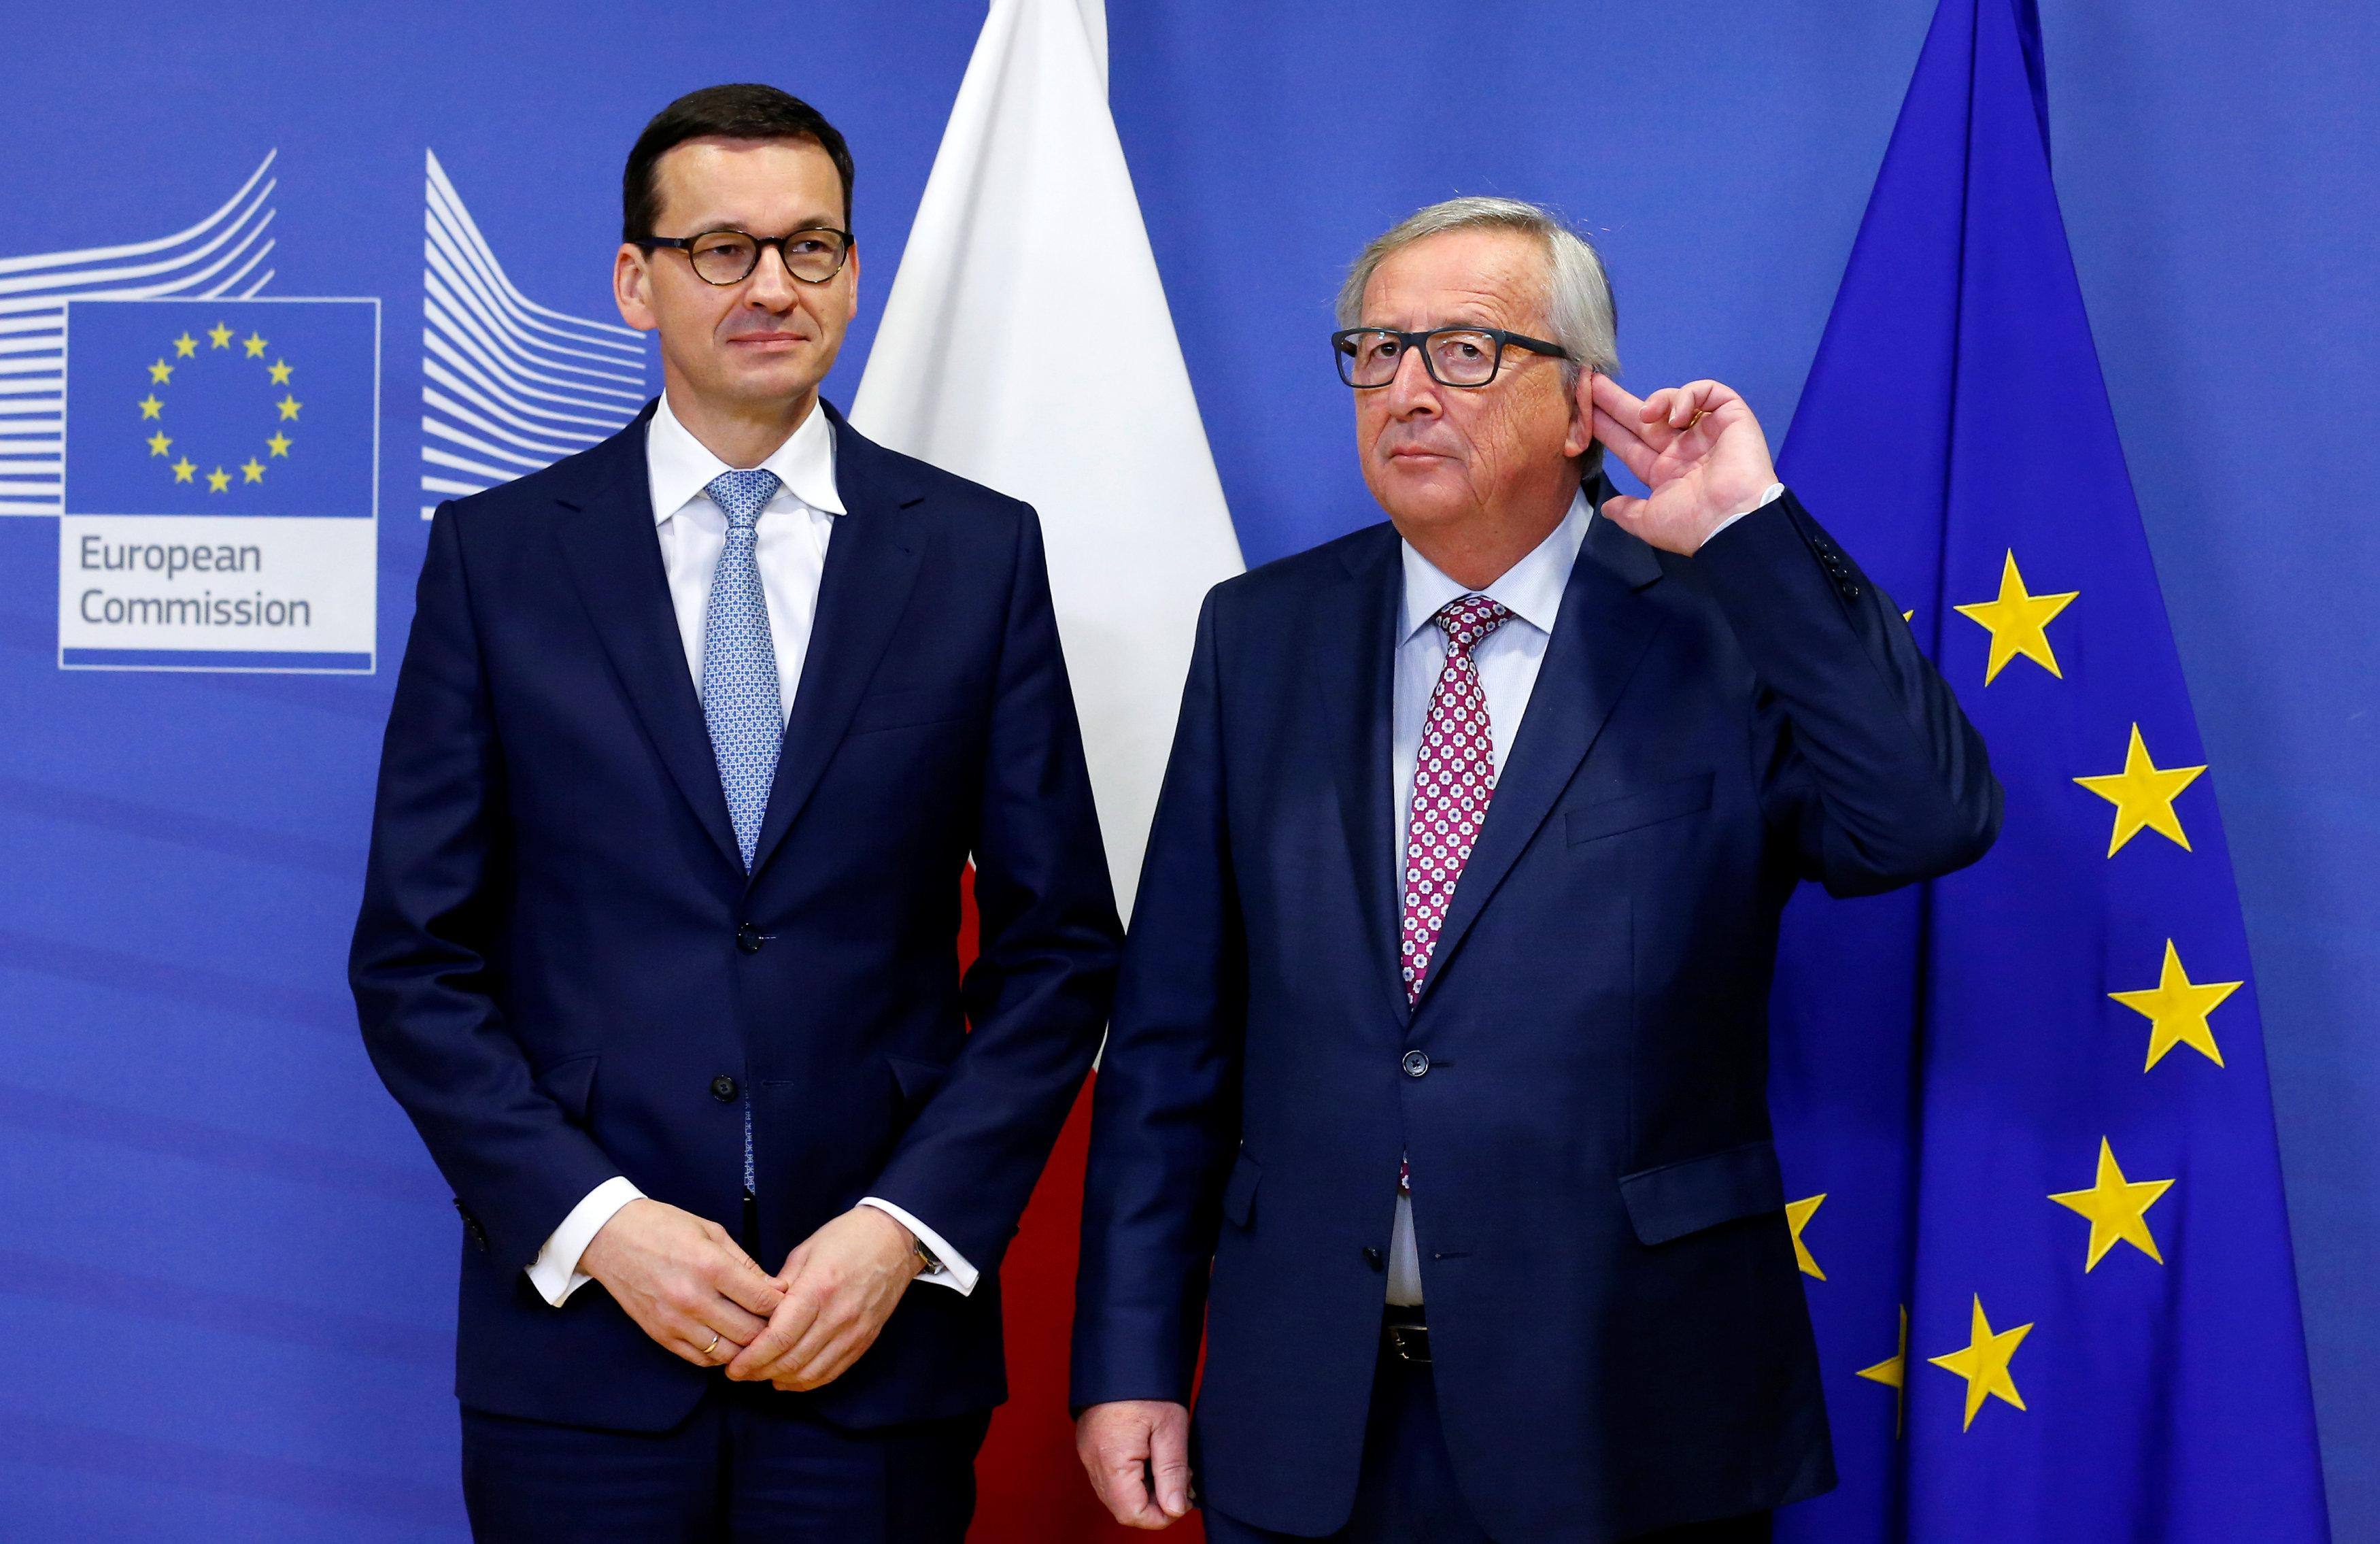 Polish PM seeks new opening with EU but sticks to courts overhaul